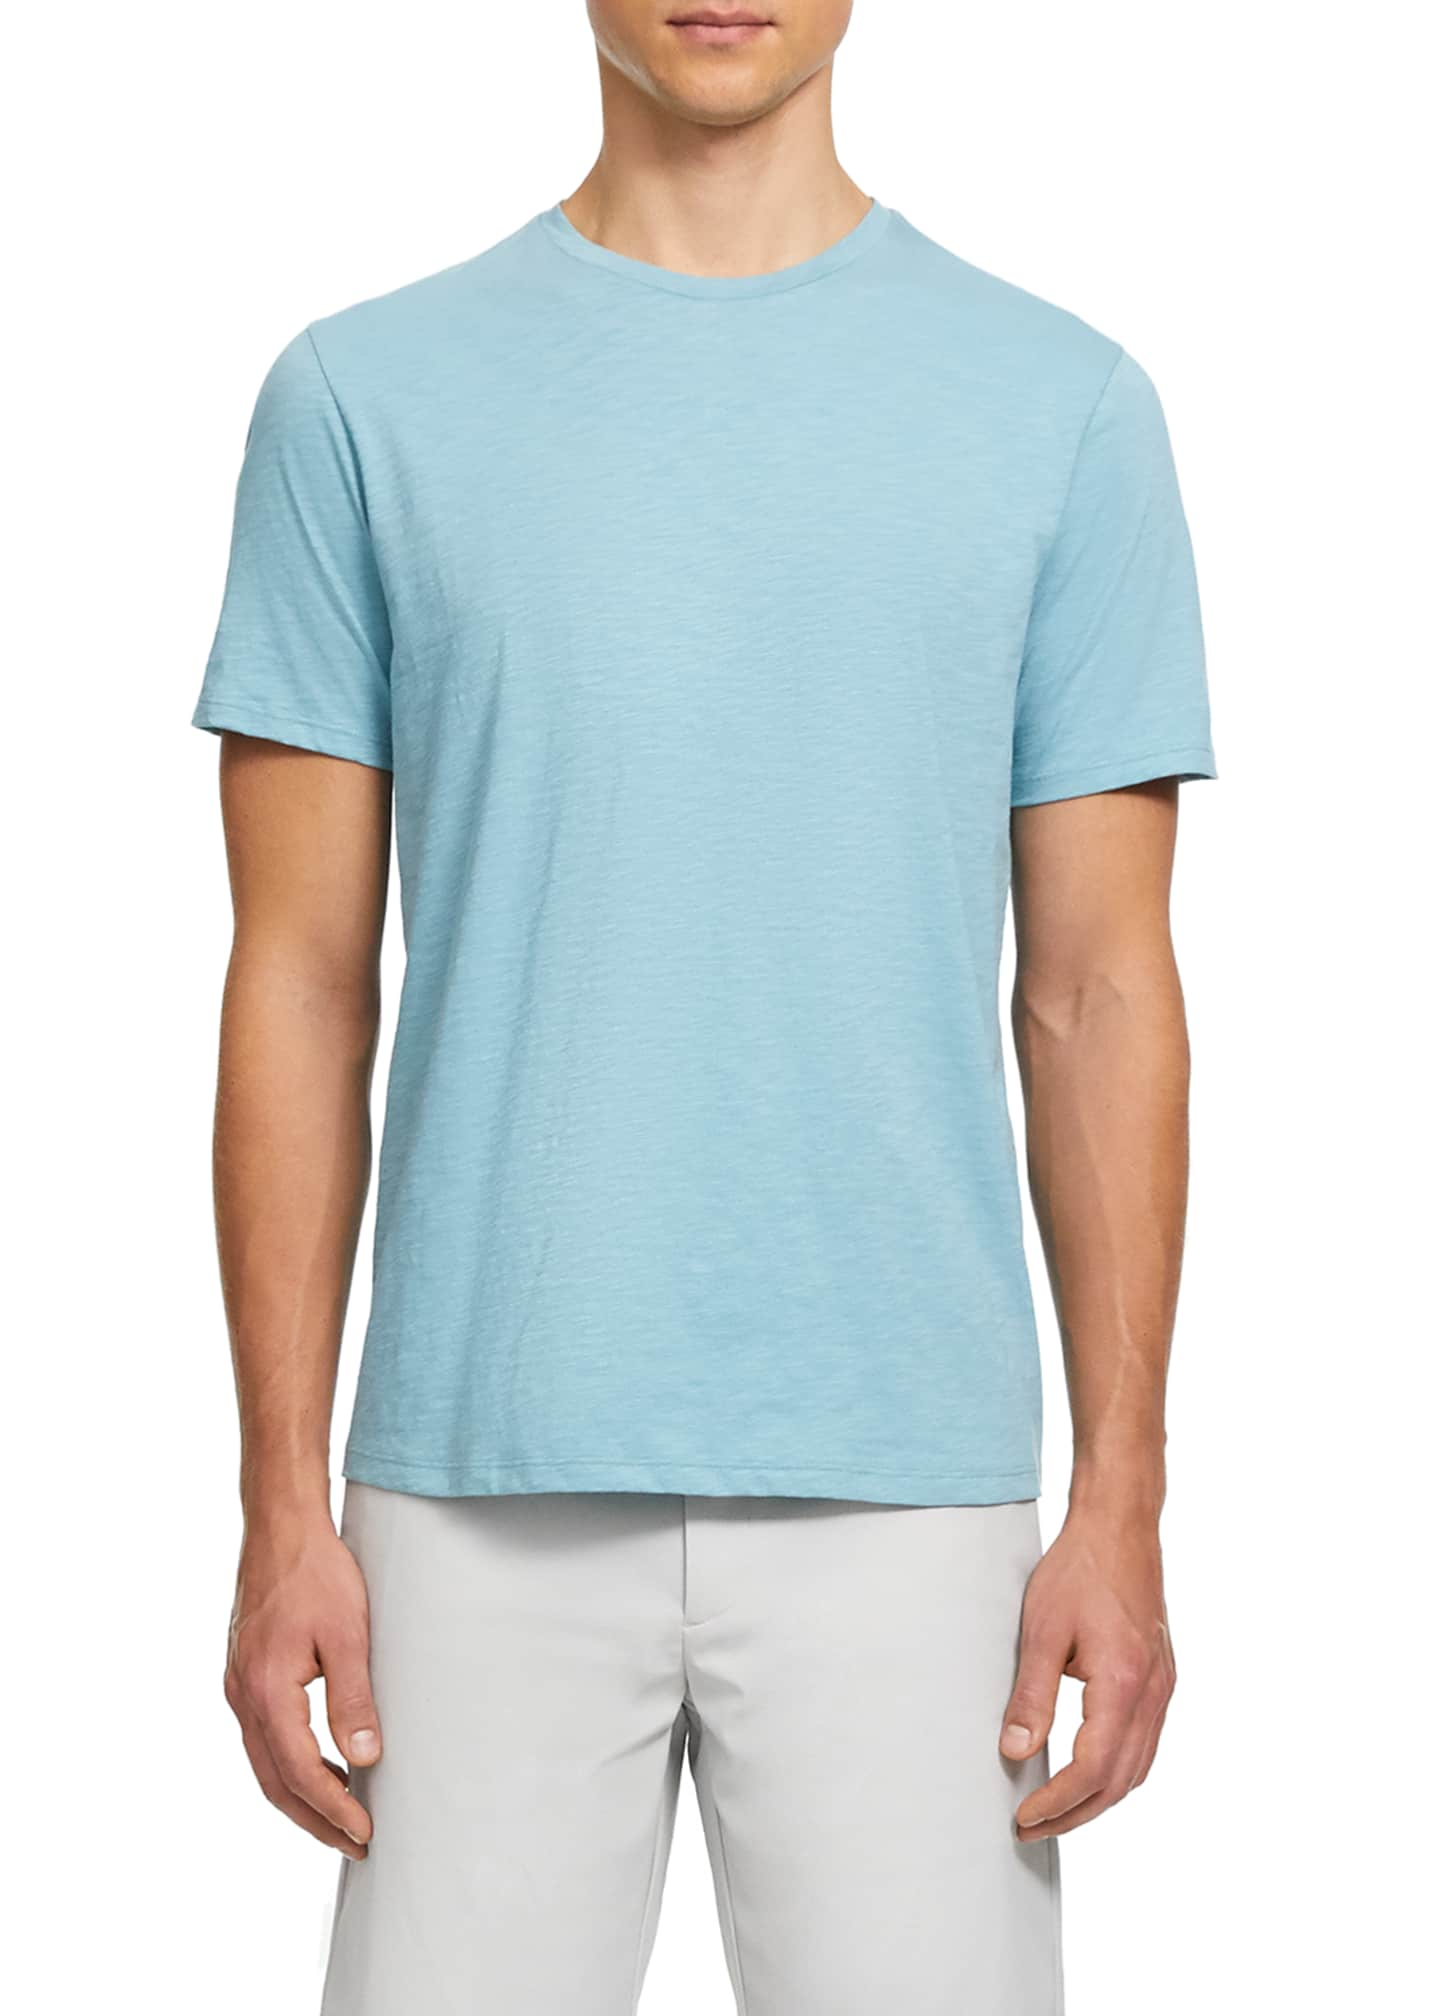 Image 1 of 3: Men's Cosmos Basic Short-Sleeve Tee